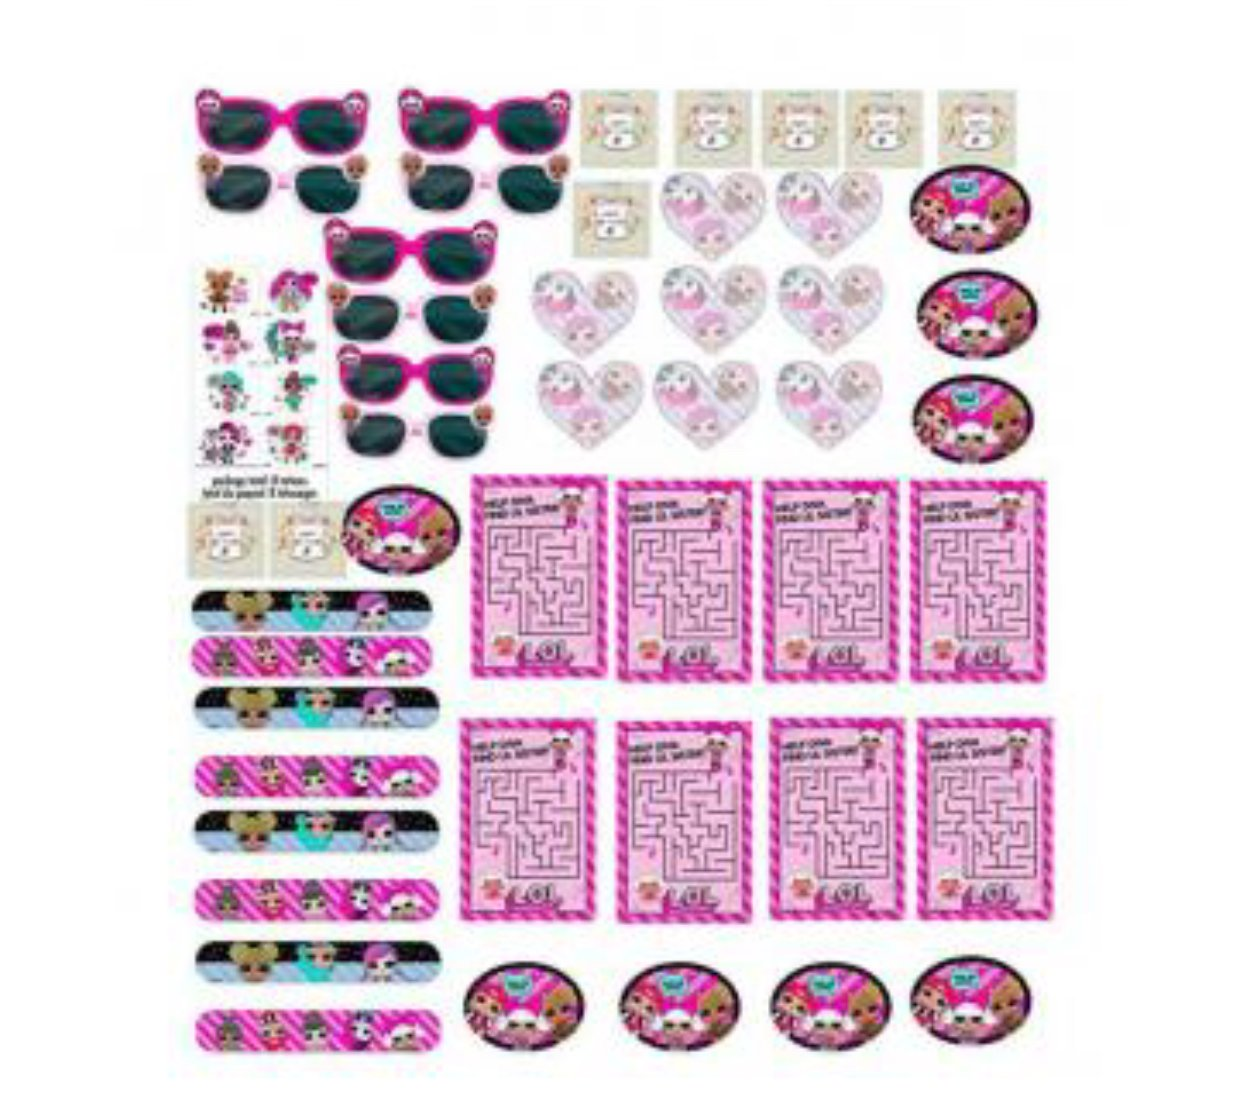 lol Party Supplies Birthday Favor Pack - Variety Assortment Bundle of Activity Sheets, Slap Bracelets, Novelty Glasses, Temporary Tattoos, Stickers, Mini Notepads and Birthday Tattoo's For 8 Guests